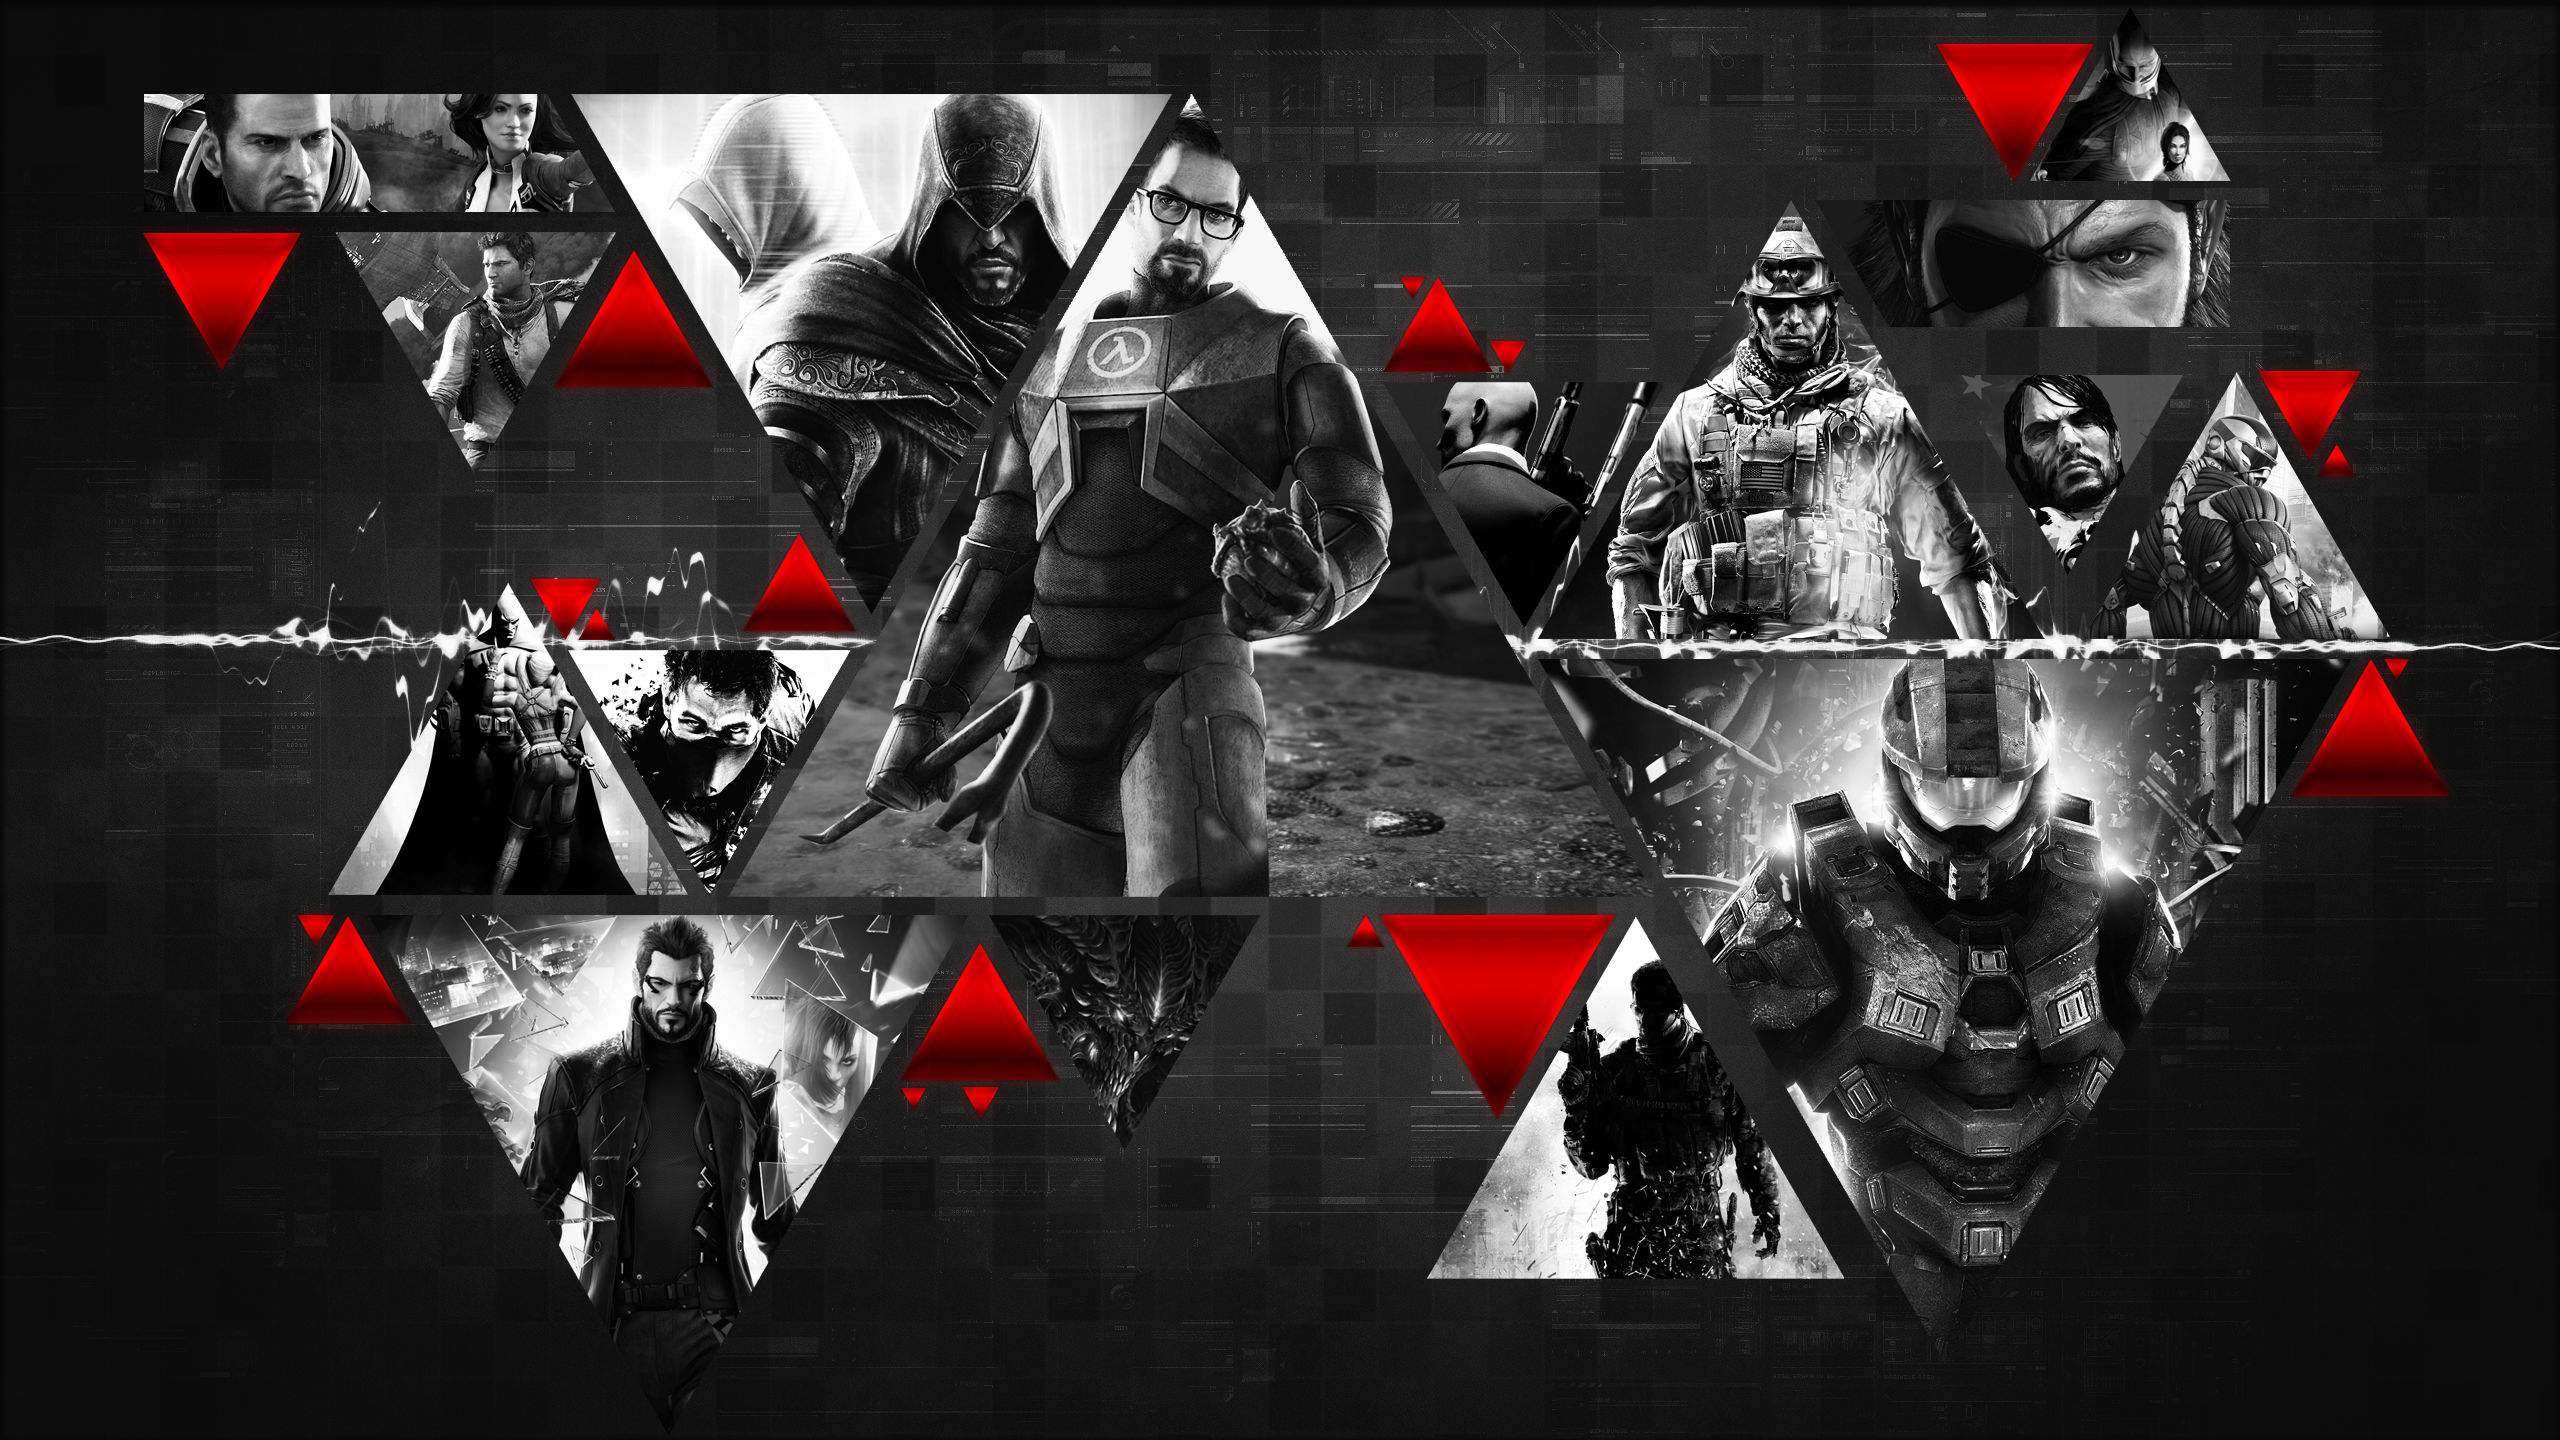 General 2560x1440 Batman: Arkham City Half-Life Assassin's Creed: Revelations Halo Red Dead Redemption Hitman Call of Duty Metal Gear Solid  Crysis video games Deus Ex: Human Revolution Star Wars Diablo III Mass Effect 2 Assassin's Creed artwork collage masterchief Master Chief Batman: Arkham Asylum Mass Effect Crysis 3 Metal Gear Solid: Peace Walker Uncharted 3: Drake's Deception Battlefield 3 video game art